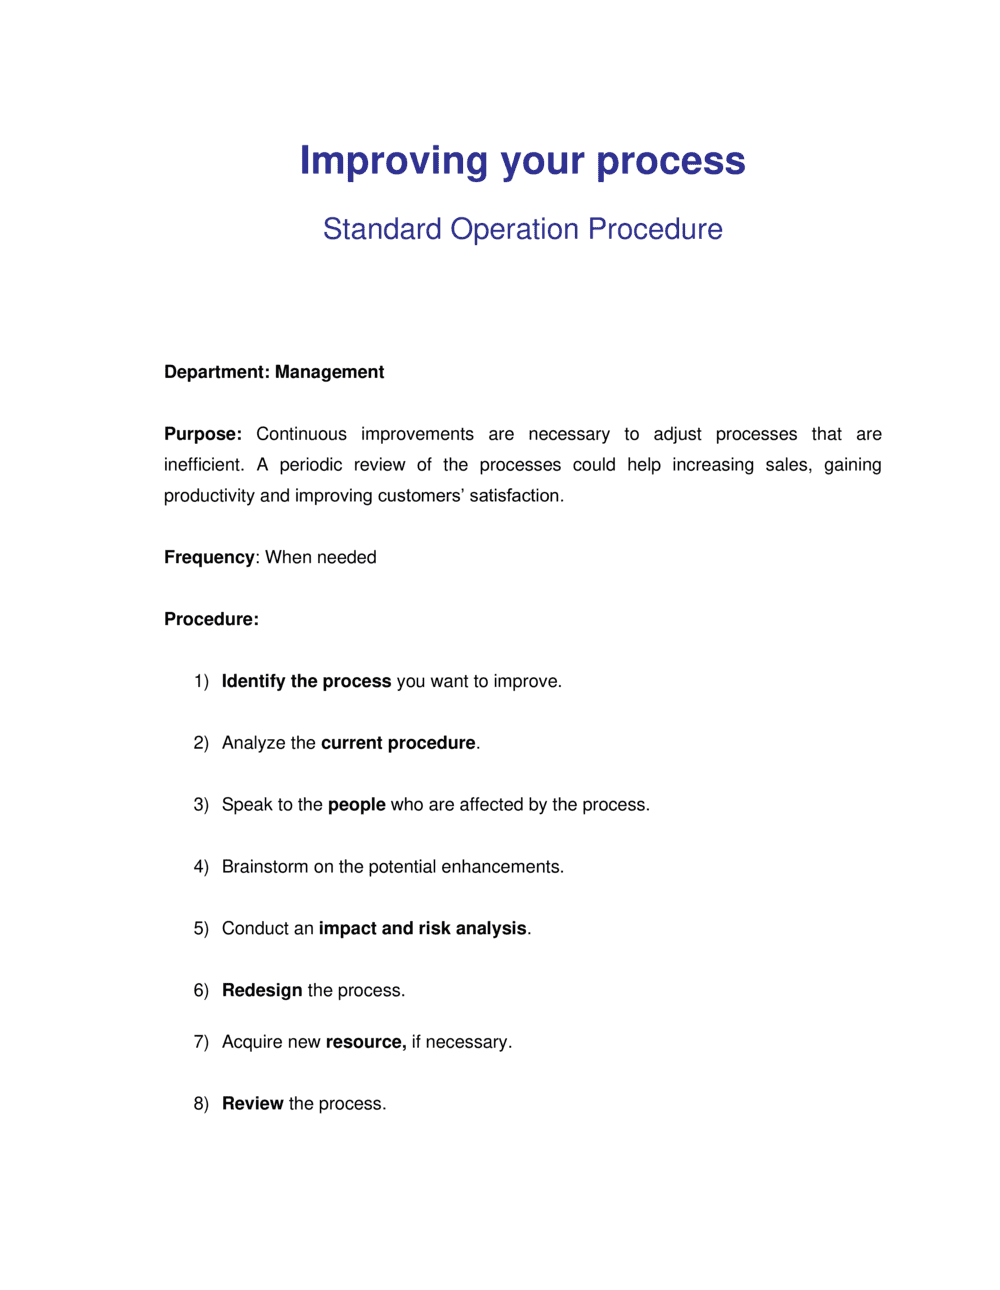 Business-in-a-Box's How to Improve any Business Process Template